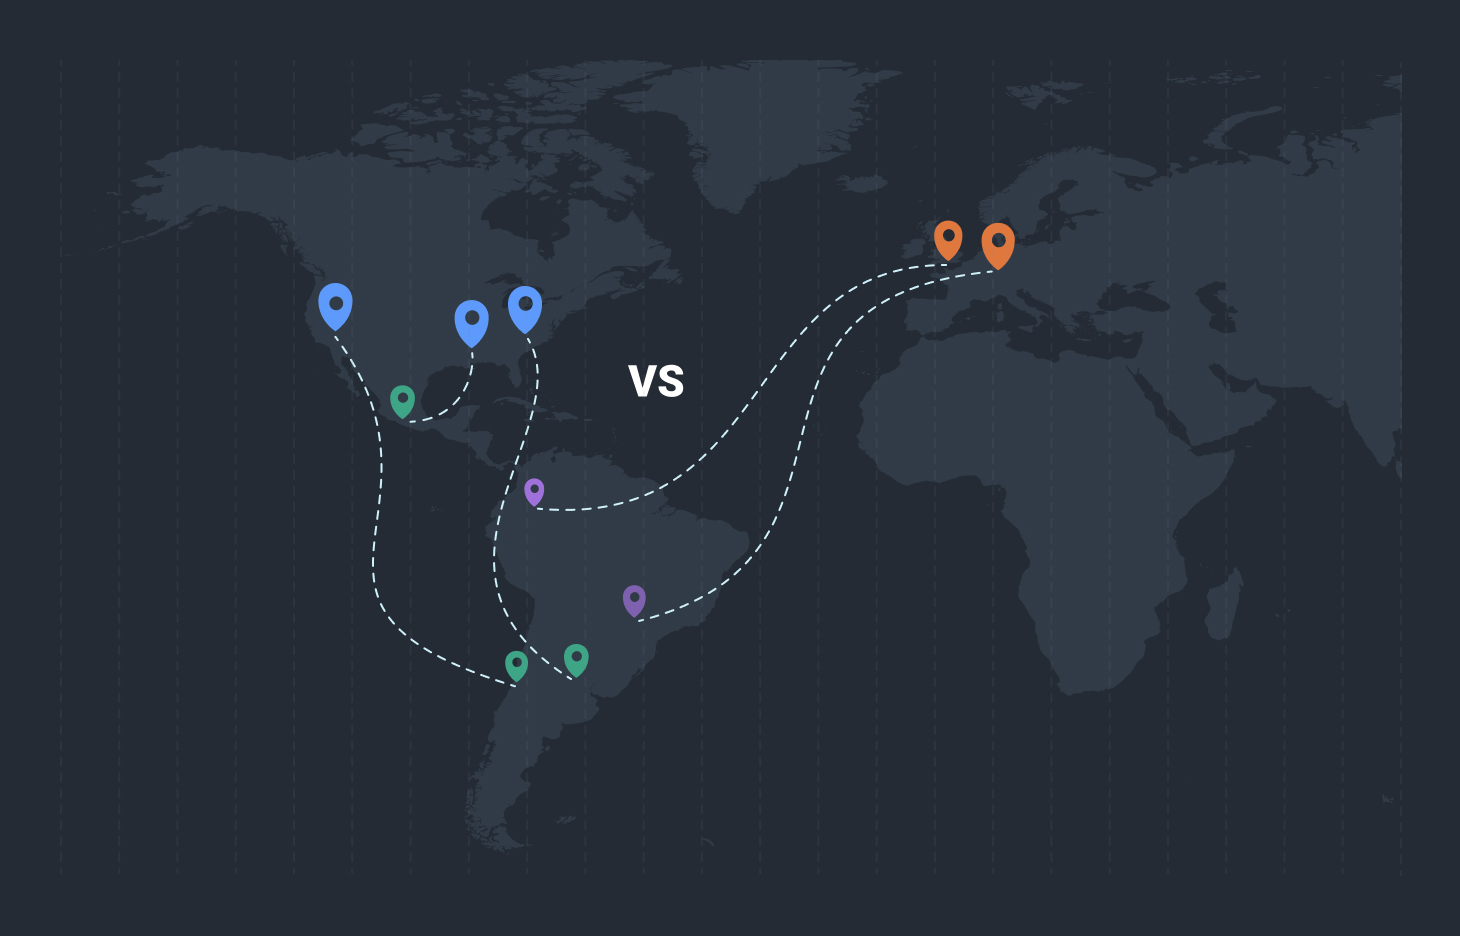 Working Remotely: Matching Time Zones vs. Opposite Time Zones